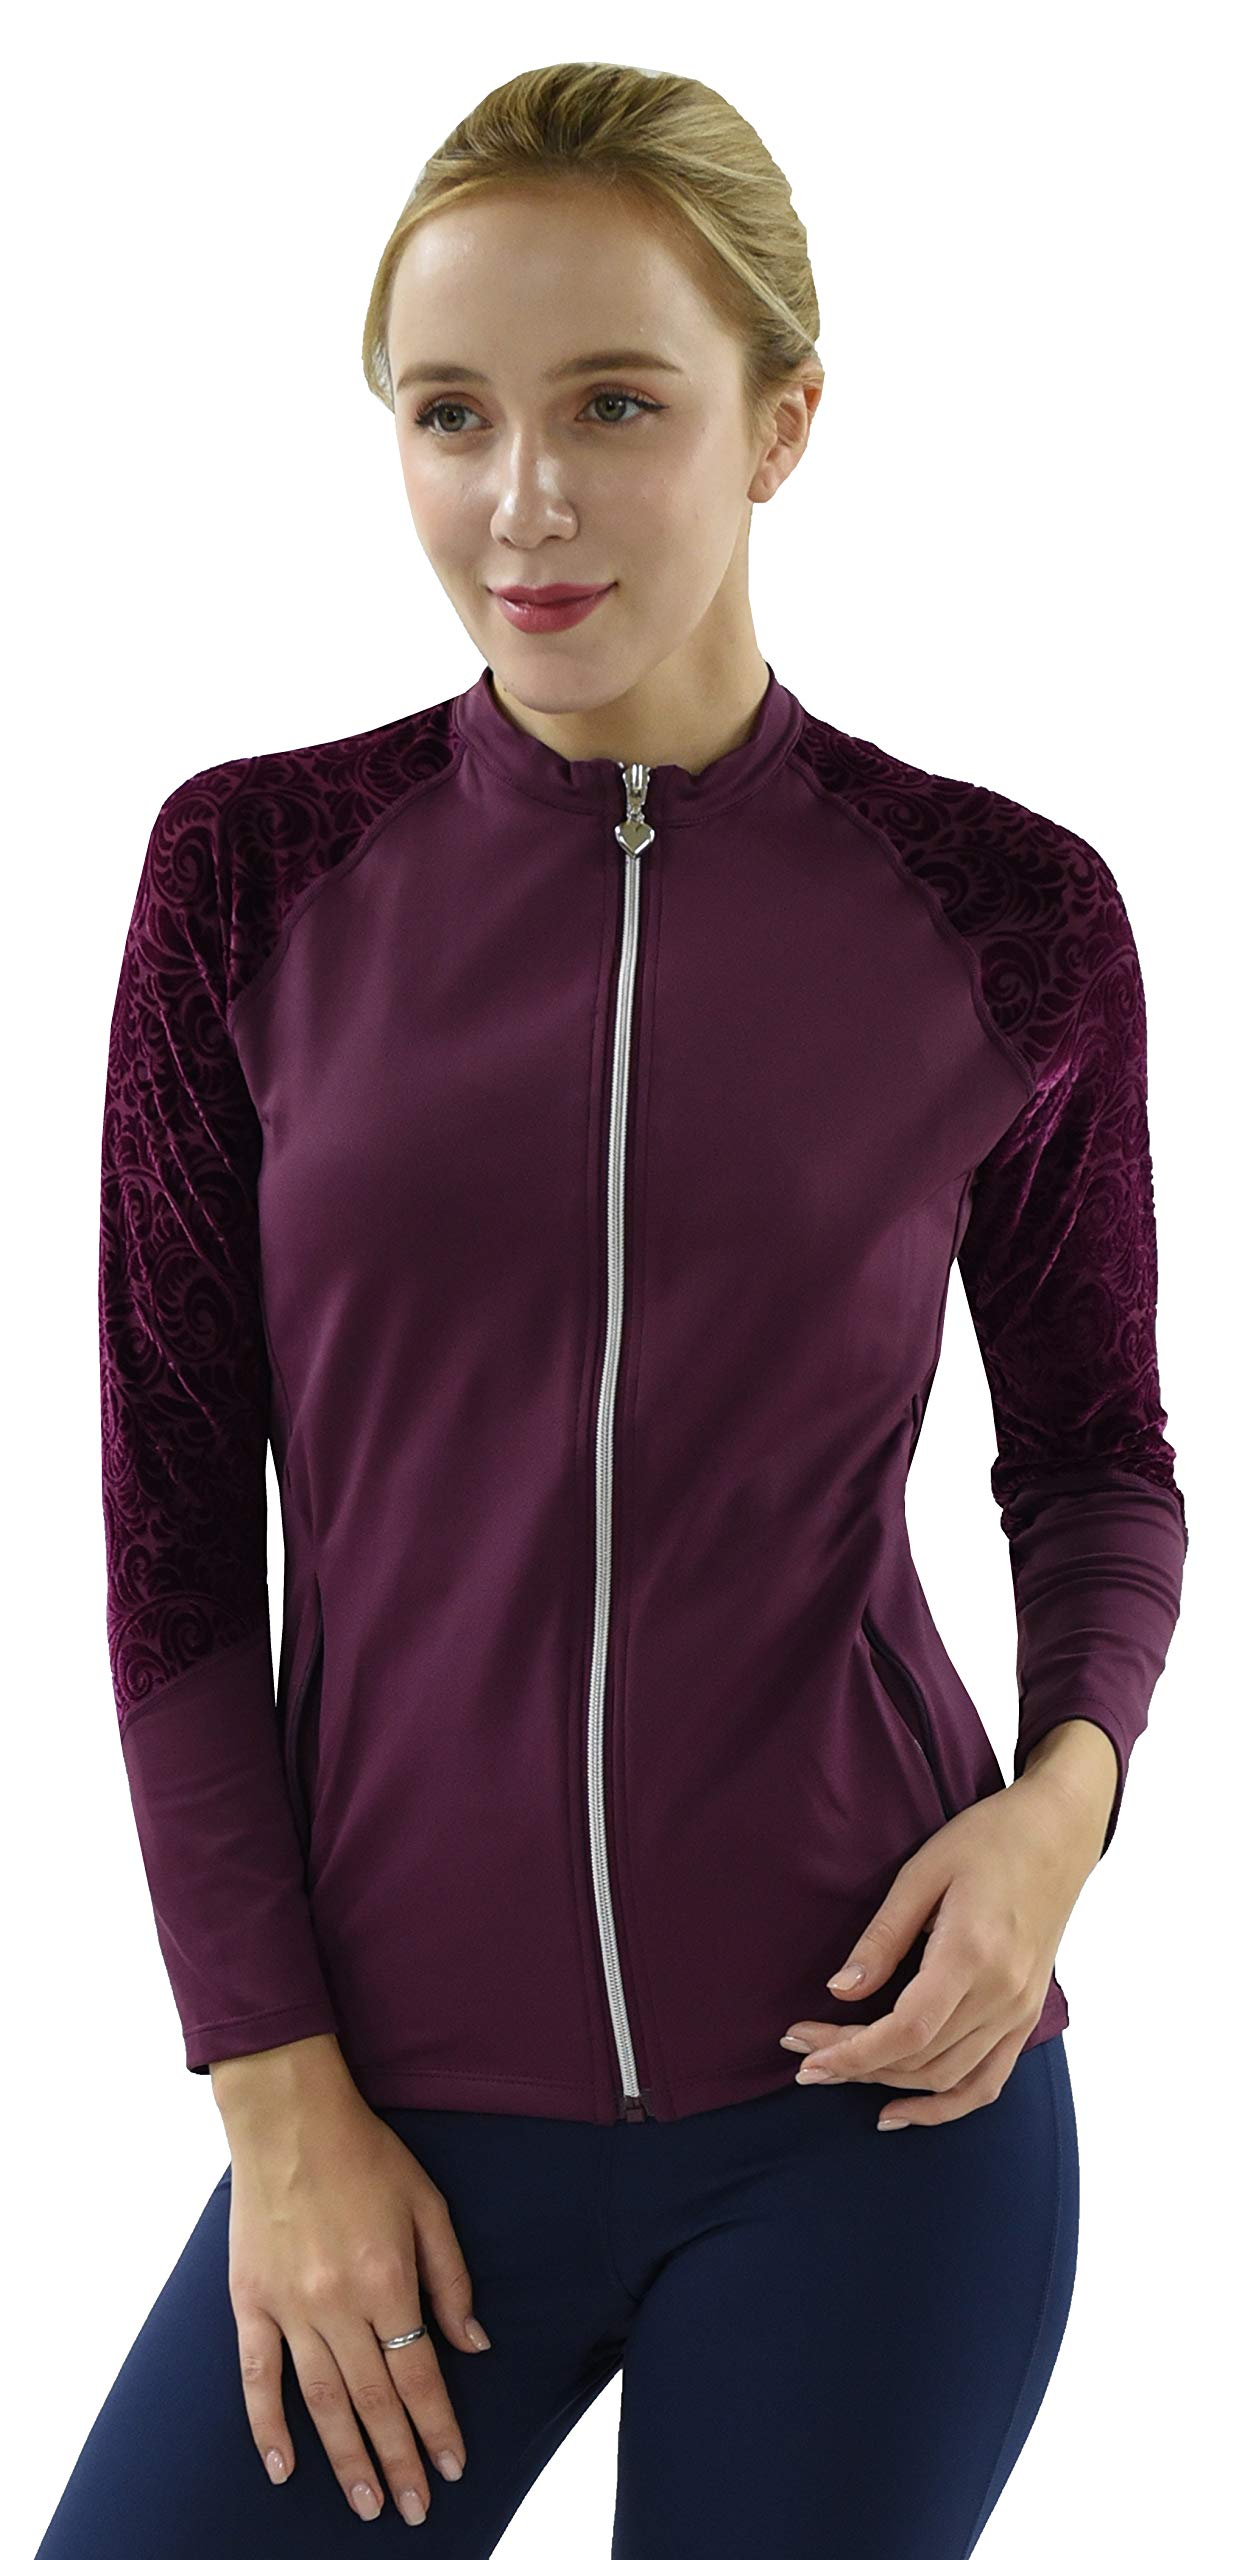 Private Island Hawaii UV Women Rash Guard Zip Up Long Sleeve Yoga Active Workout (S, DwVDW-JRSRGT) by Private Island